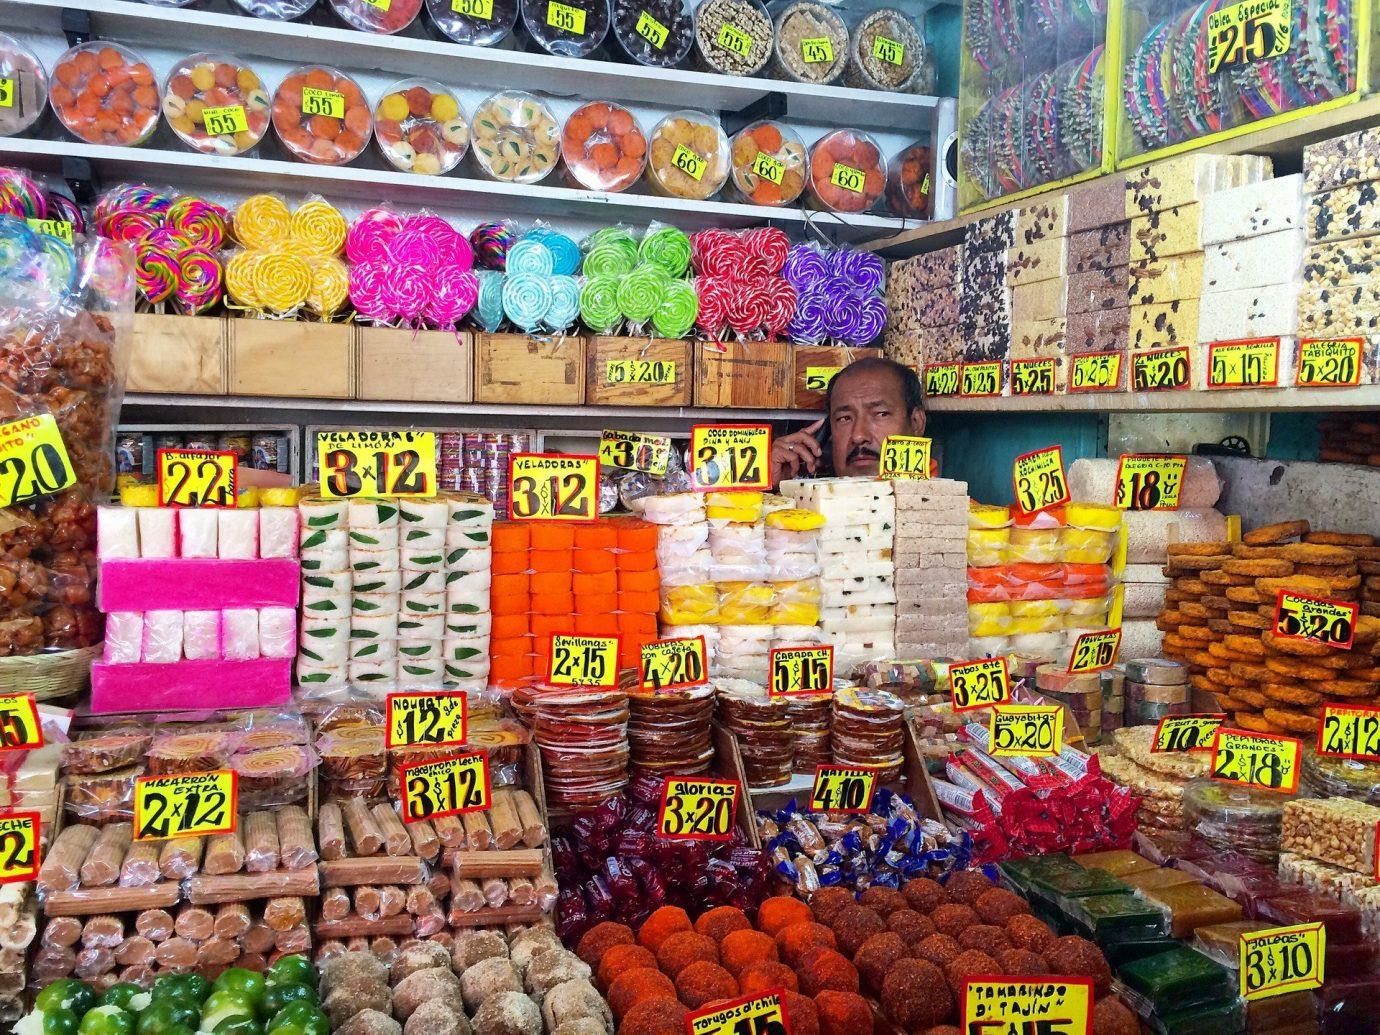 food Food + Drink Jetsetter Guides local man market markets people shopping Shops spices store marketplace grocery store supermarket City public space greengrocer retail human settlement convenience store vendor whole food bazaar convenience food many colorful bunch different several can variety